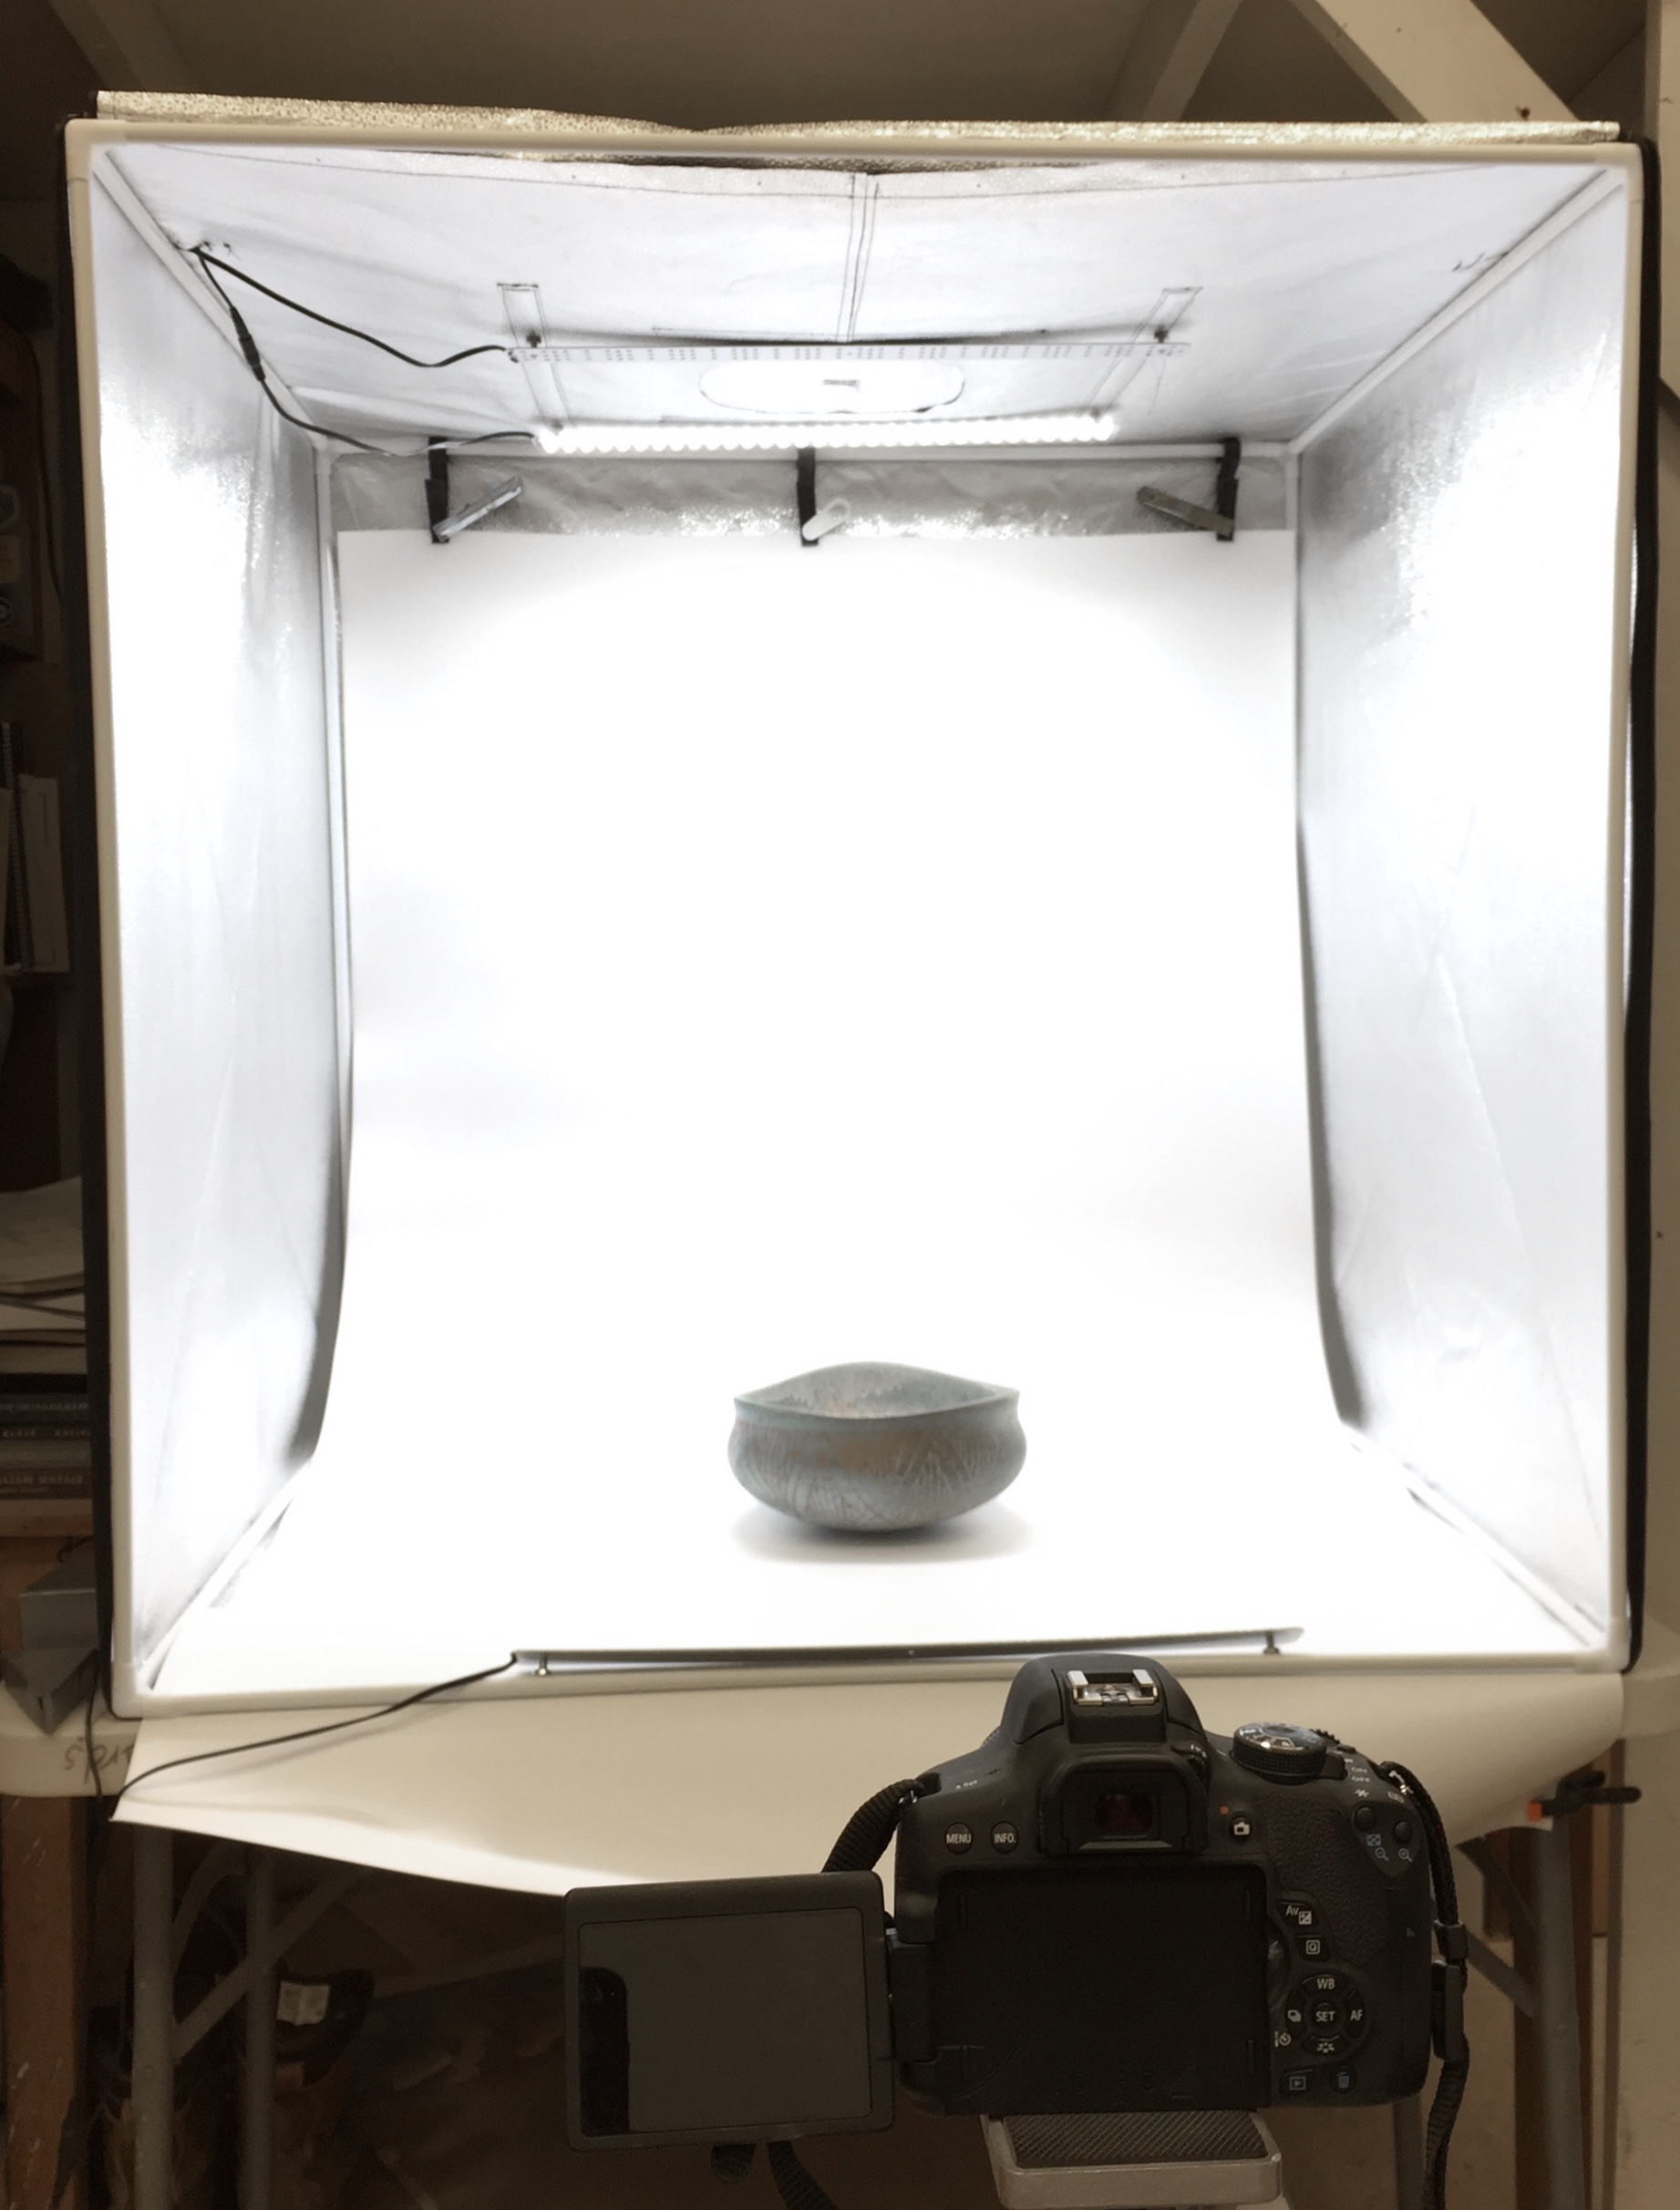 Neil Celani's photo booth set up for white backgrounds. Work and photograph by Neil Celani. 2019.